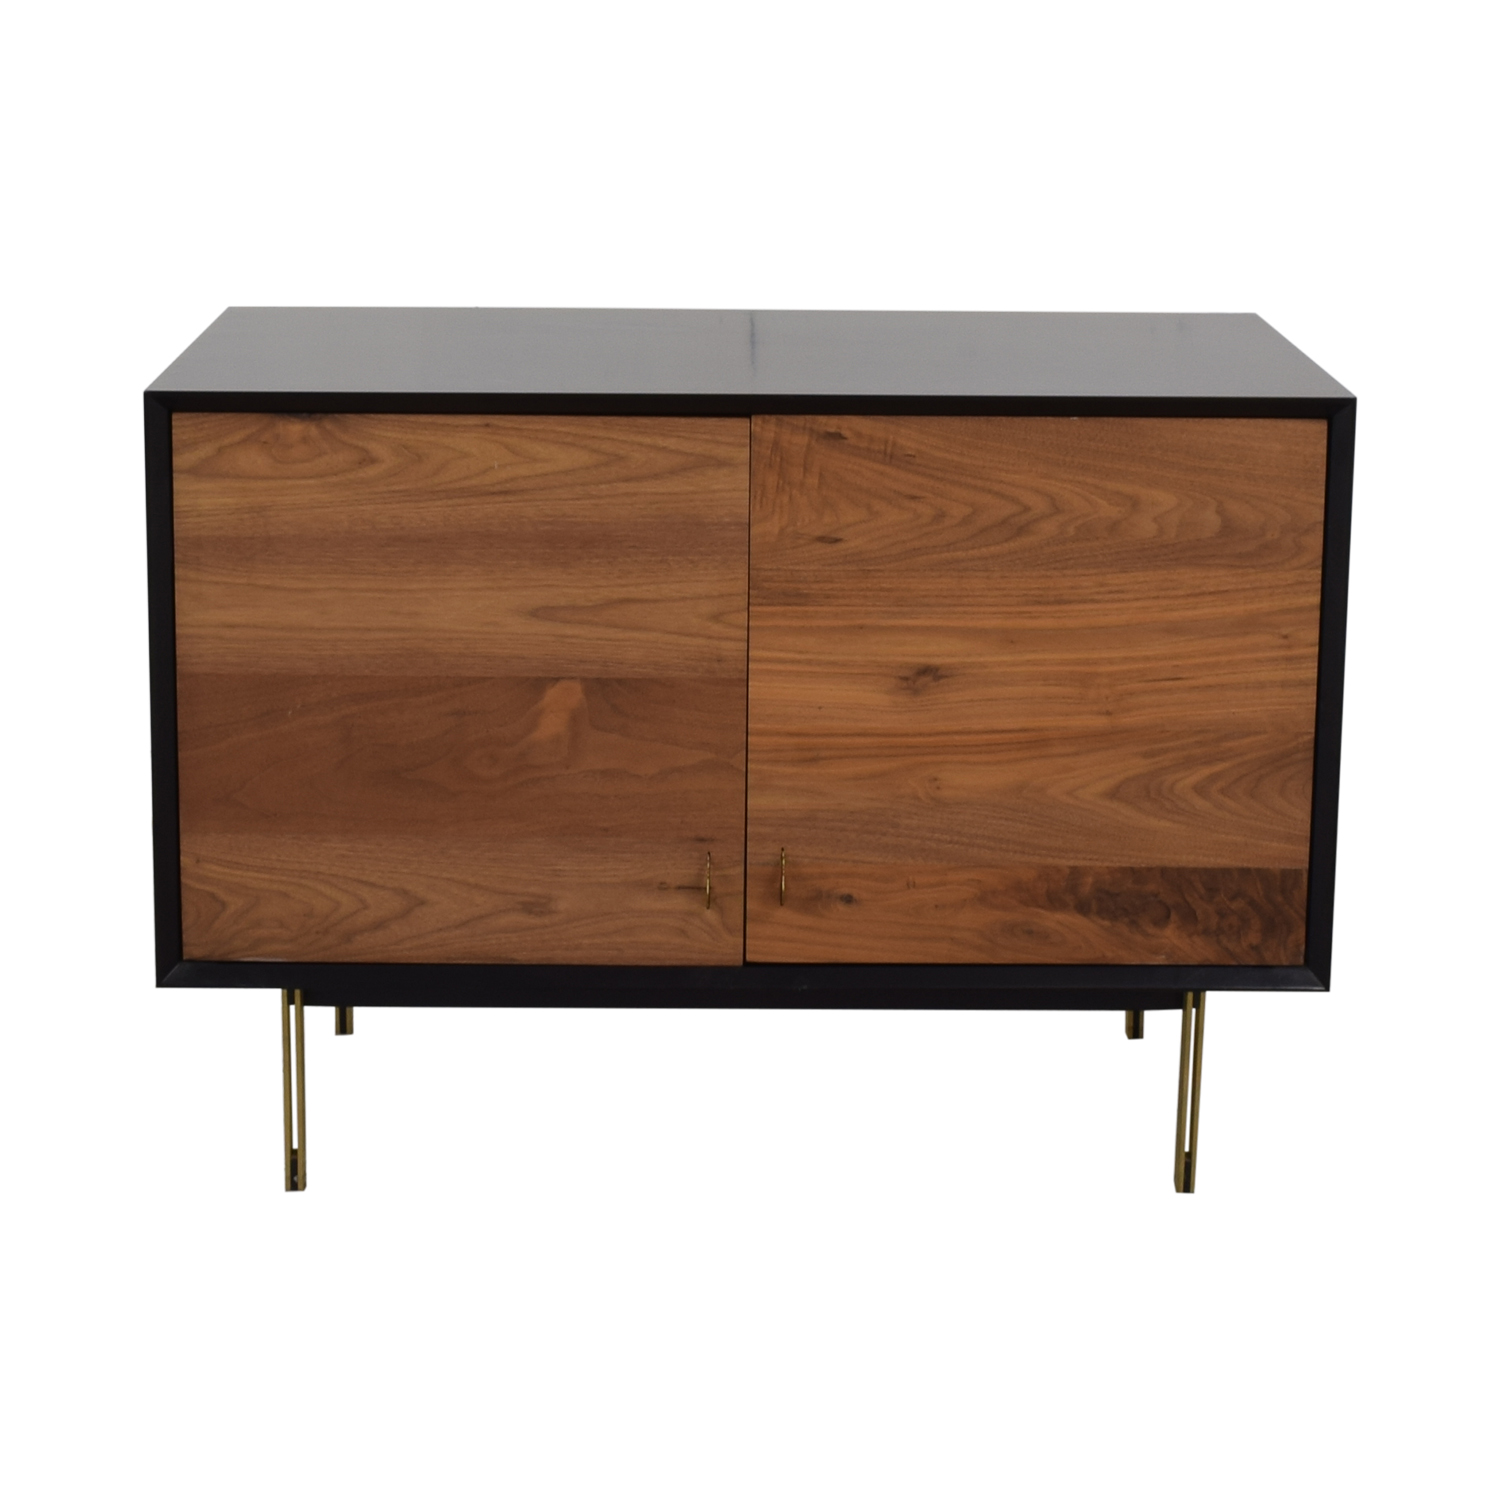 Organic Modernism Organic Modernism Custom Made Wood Media Cabinet nj